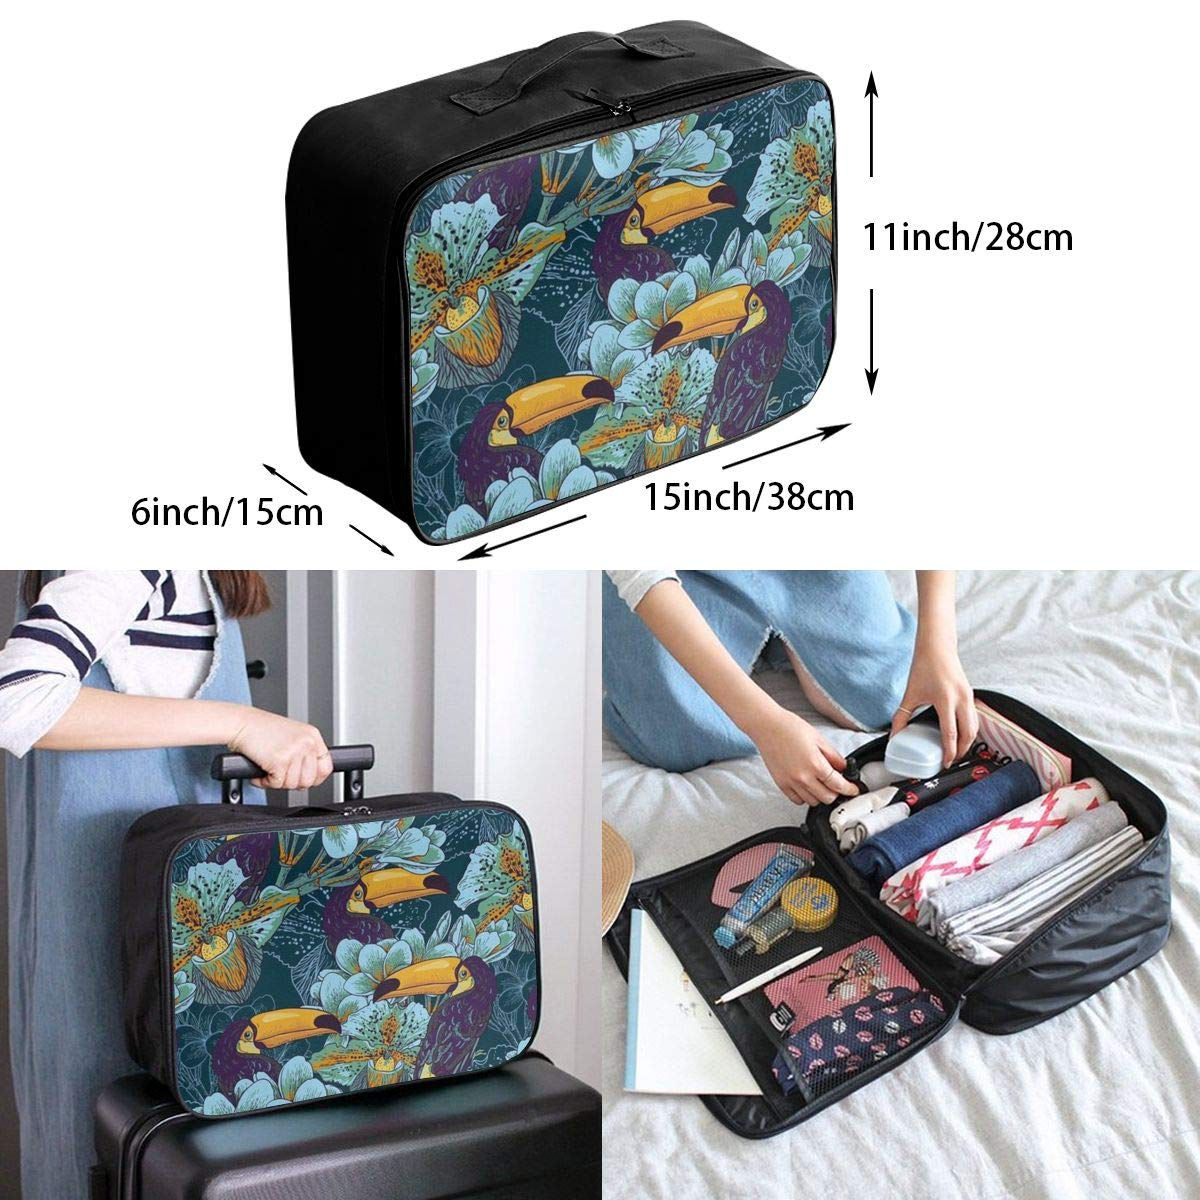 Lightweight Large Capacity Duffel Portable Luggage Bag Hornbill Toucan Bird Travel Waterproof Foldable Storage Carry Tote Bag